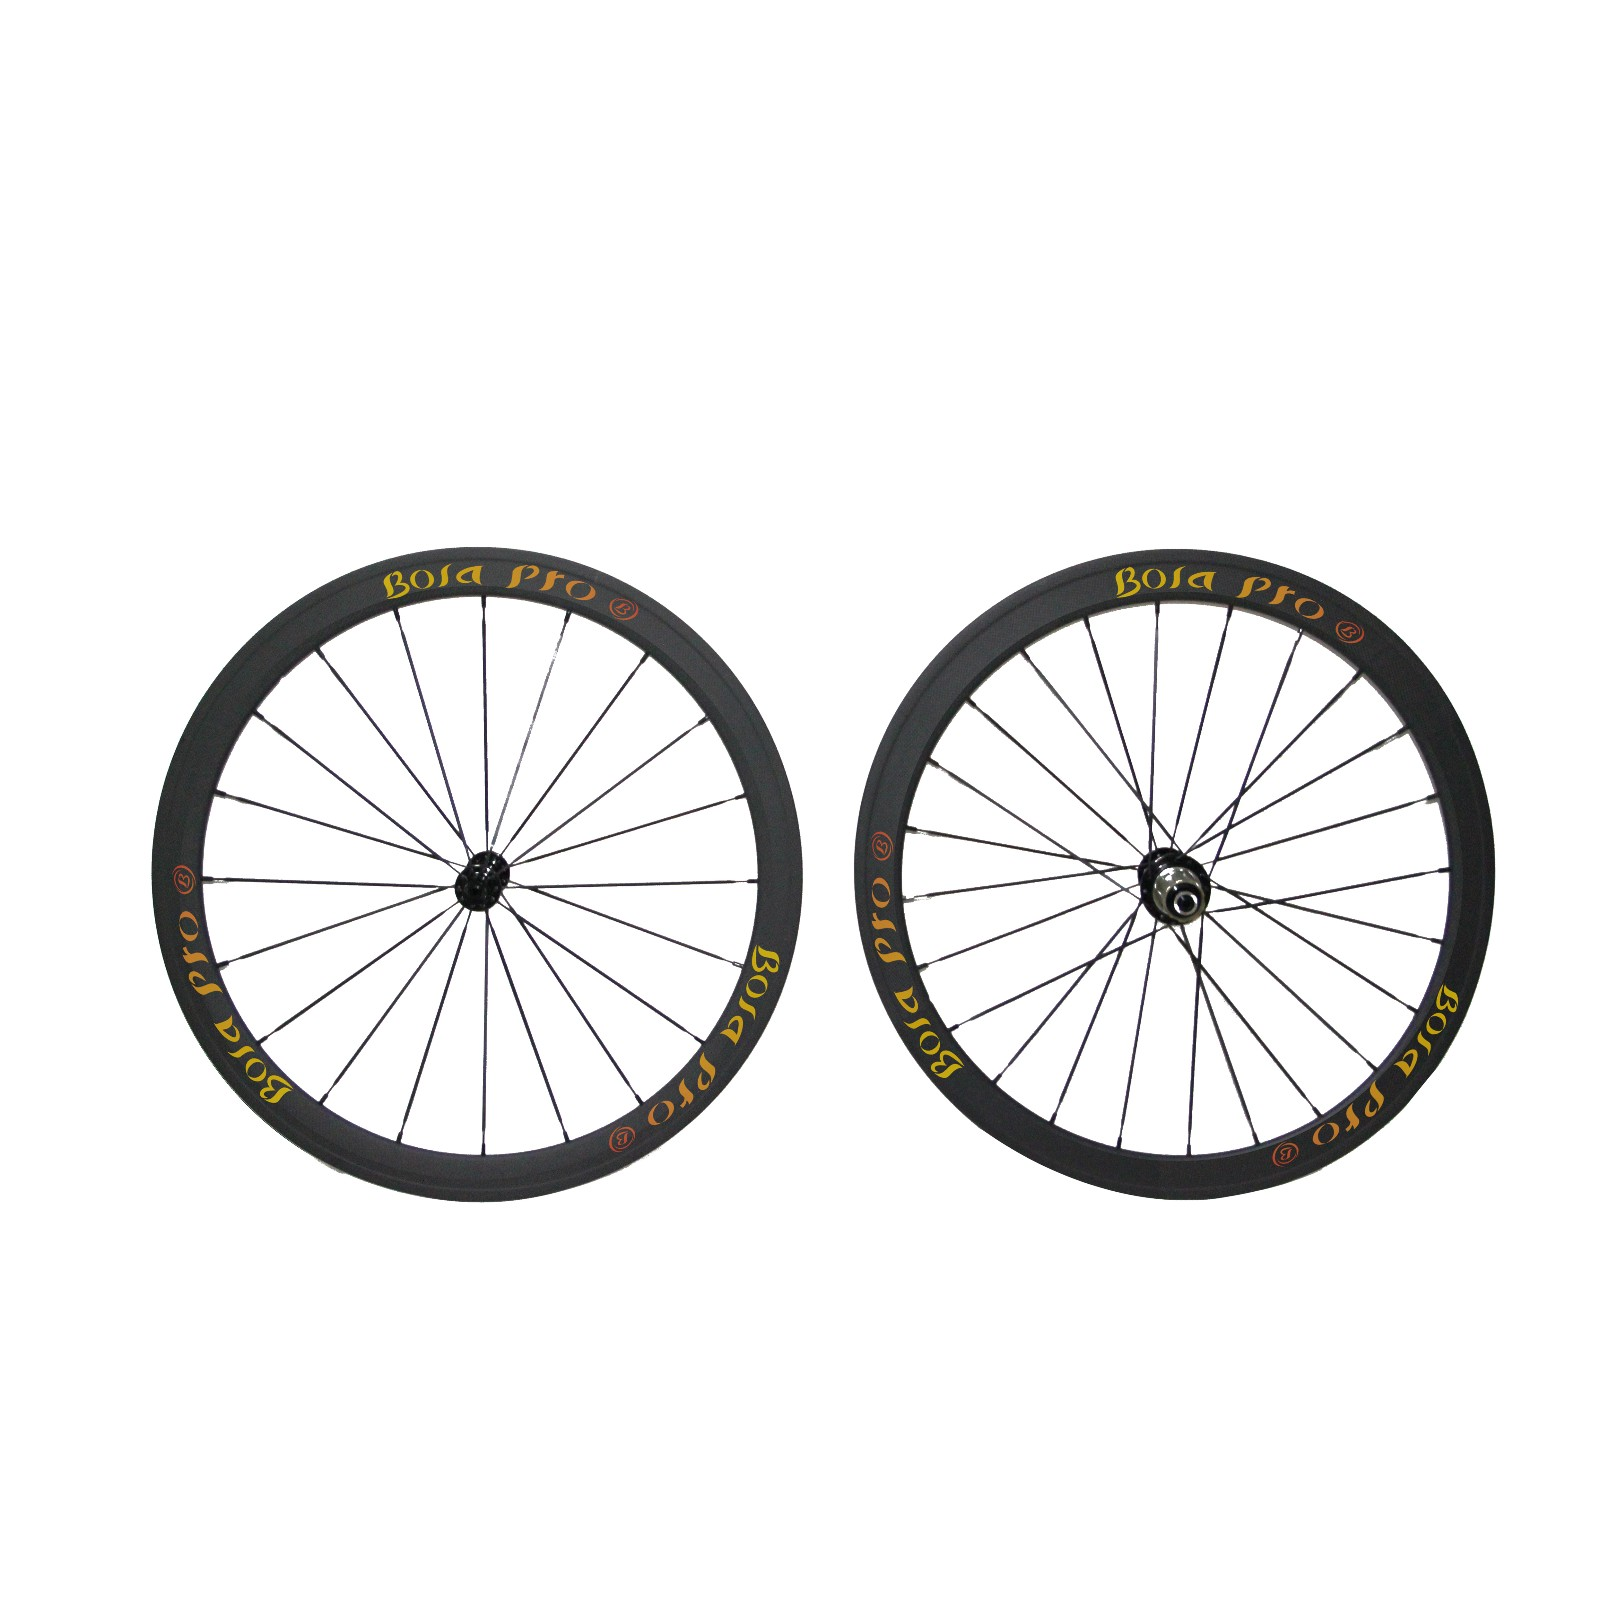 700C 38mm carbon wheelset with DT 350s